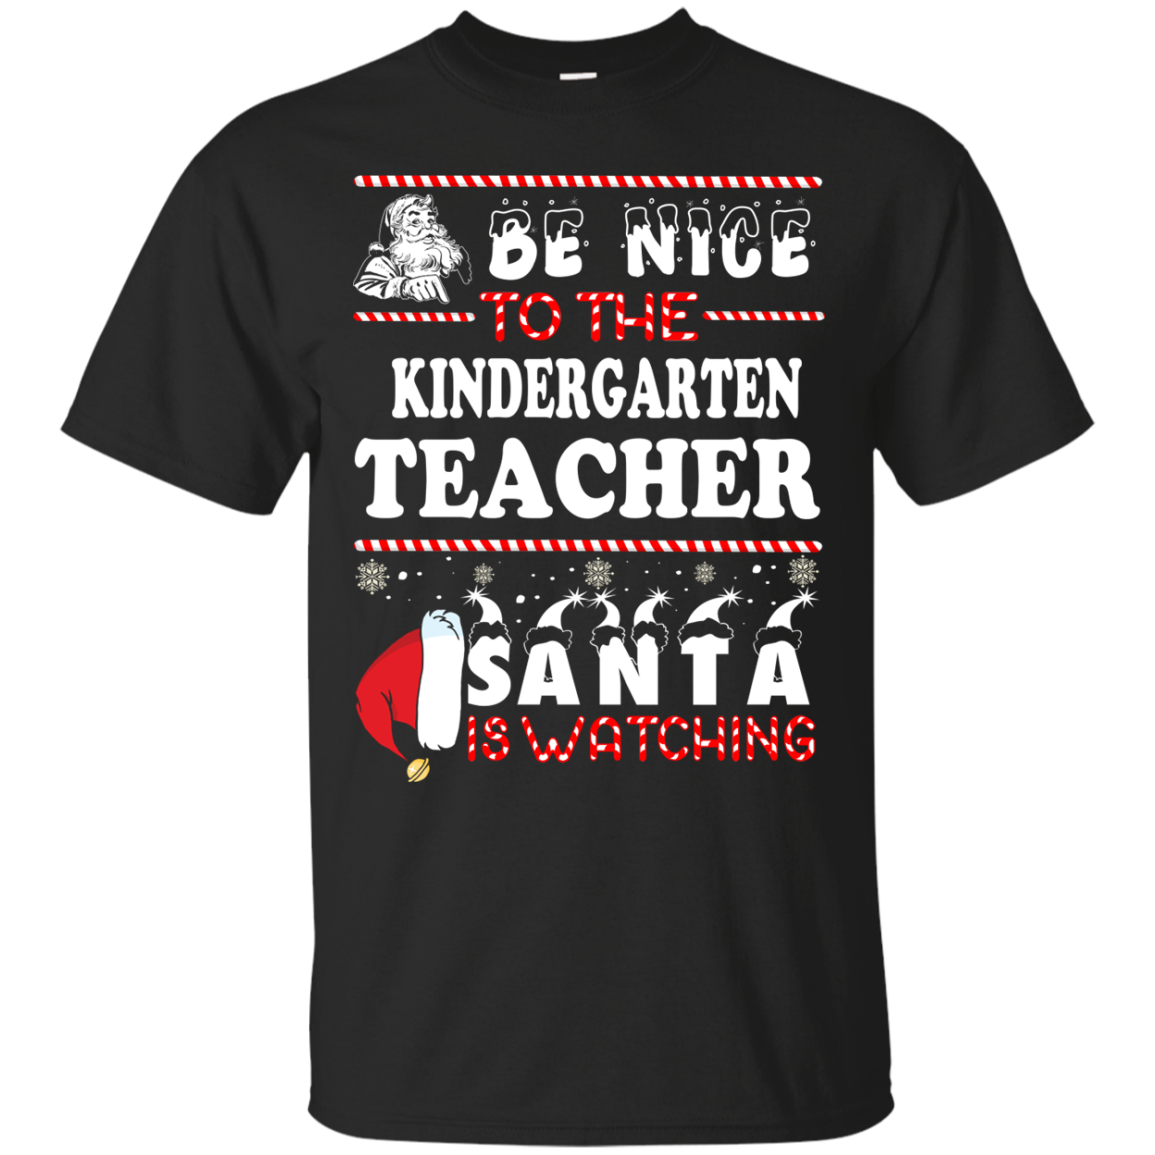 Be Nice To The Kindergarten Teacher Santa Is Watching Sweatshirt, T Shirt